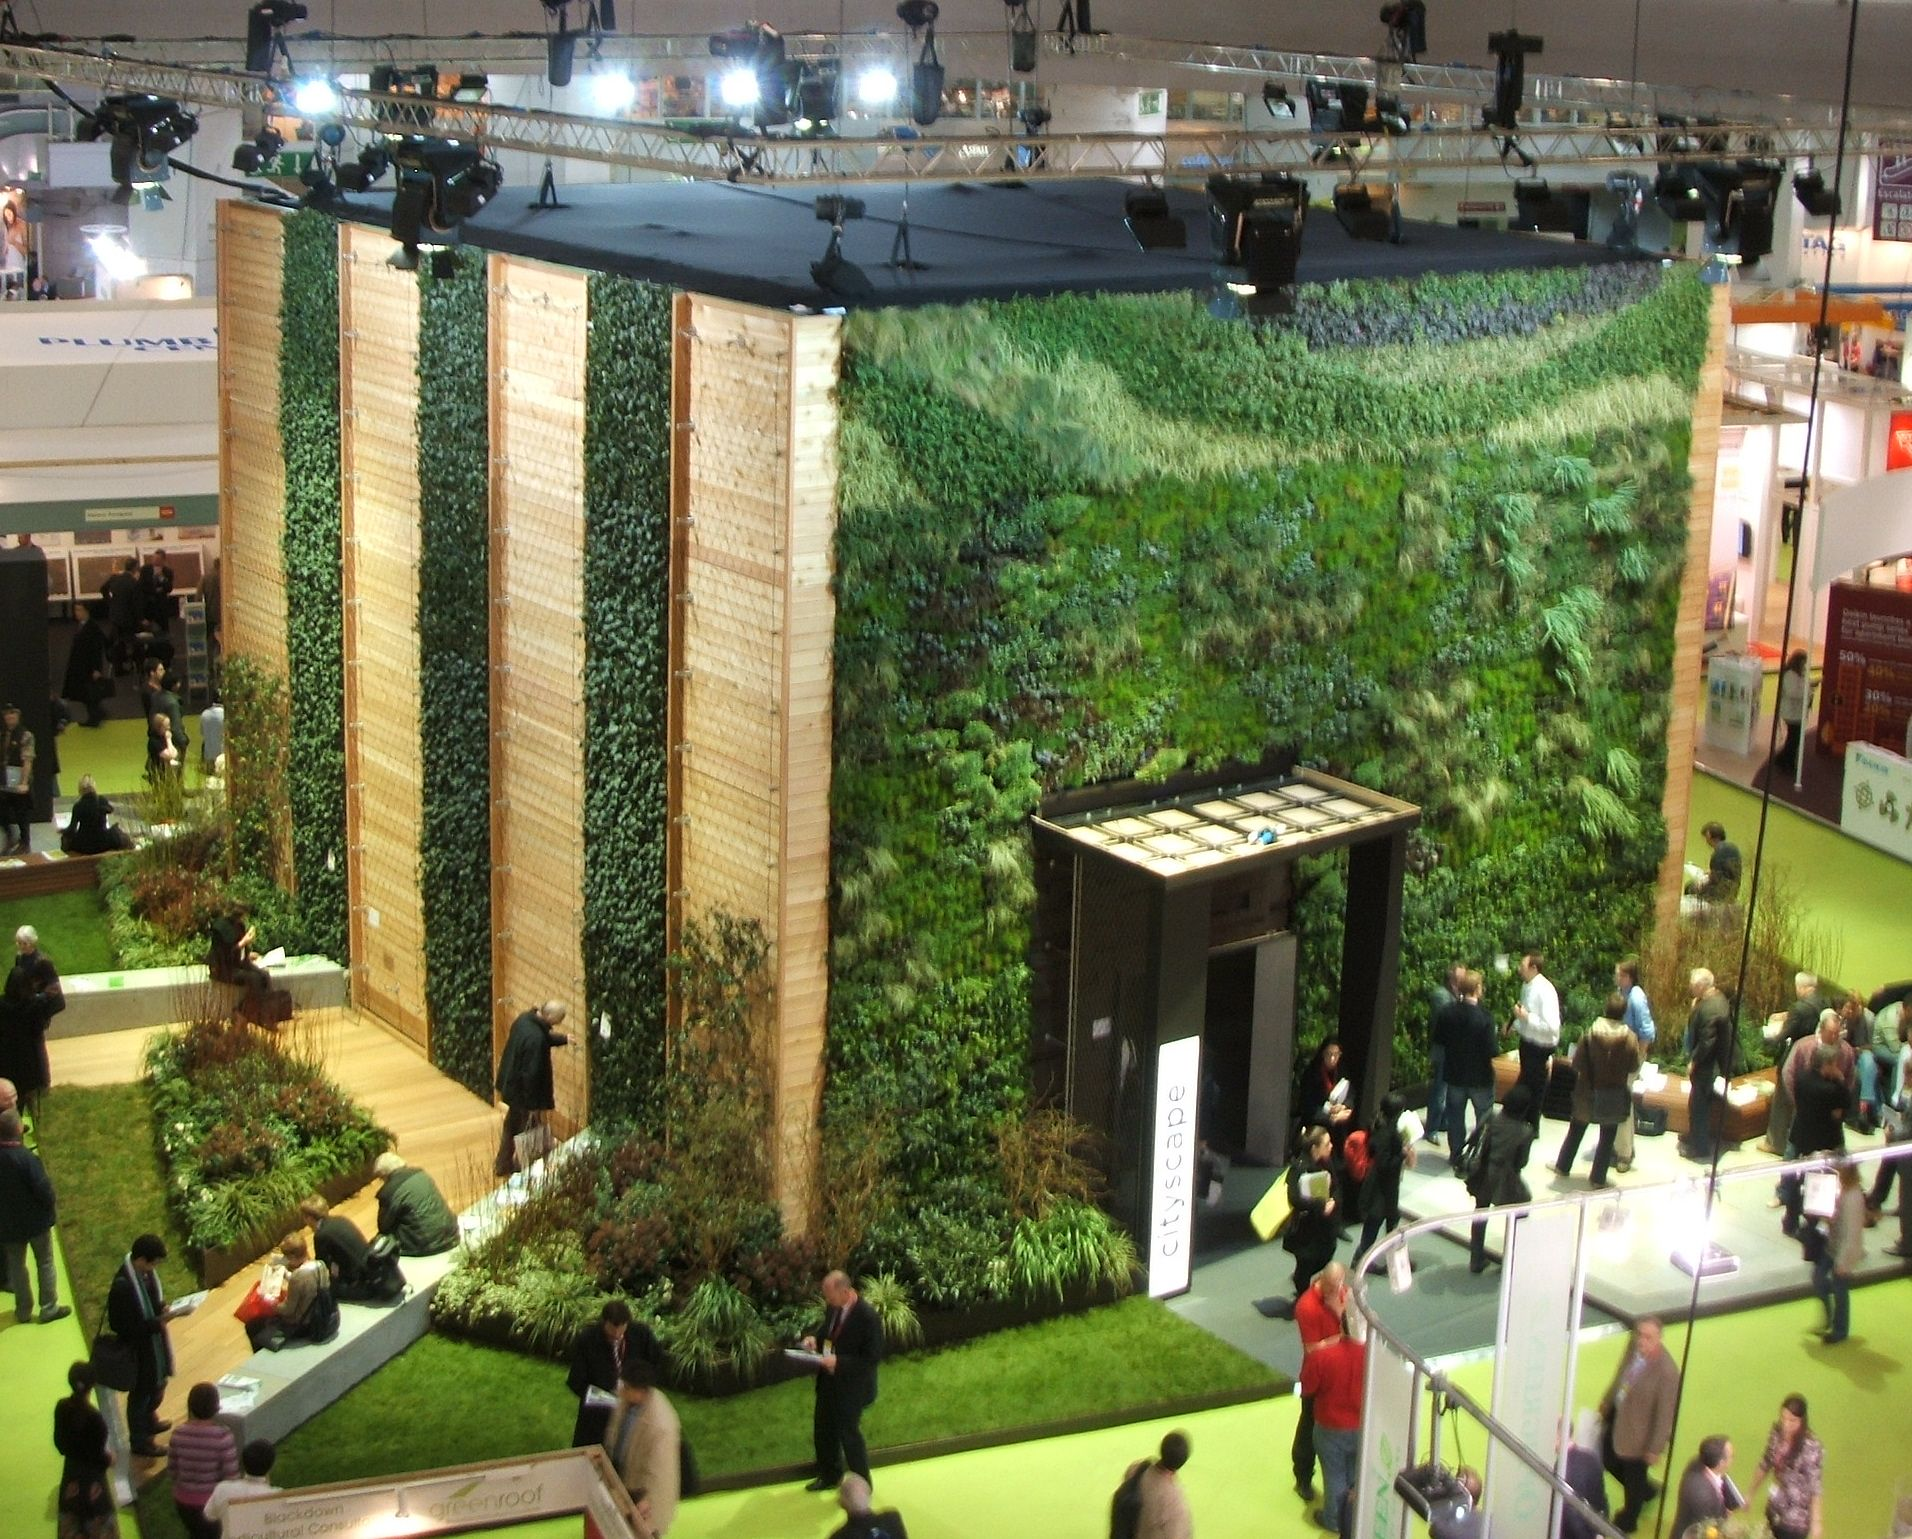 How To Build A Living Wall four types of vertical planters showcased at london's ecobuild